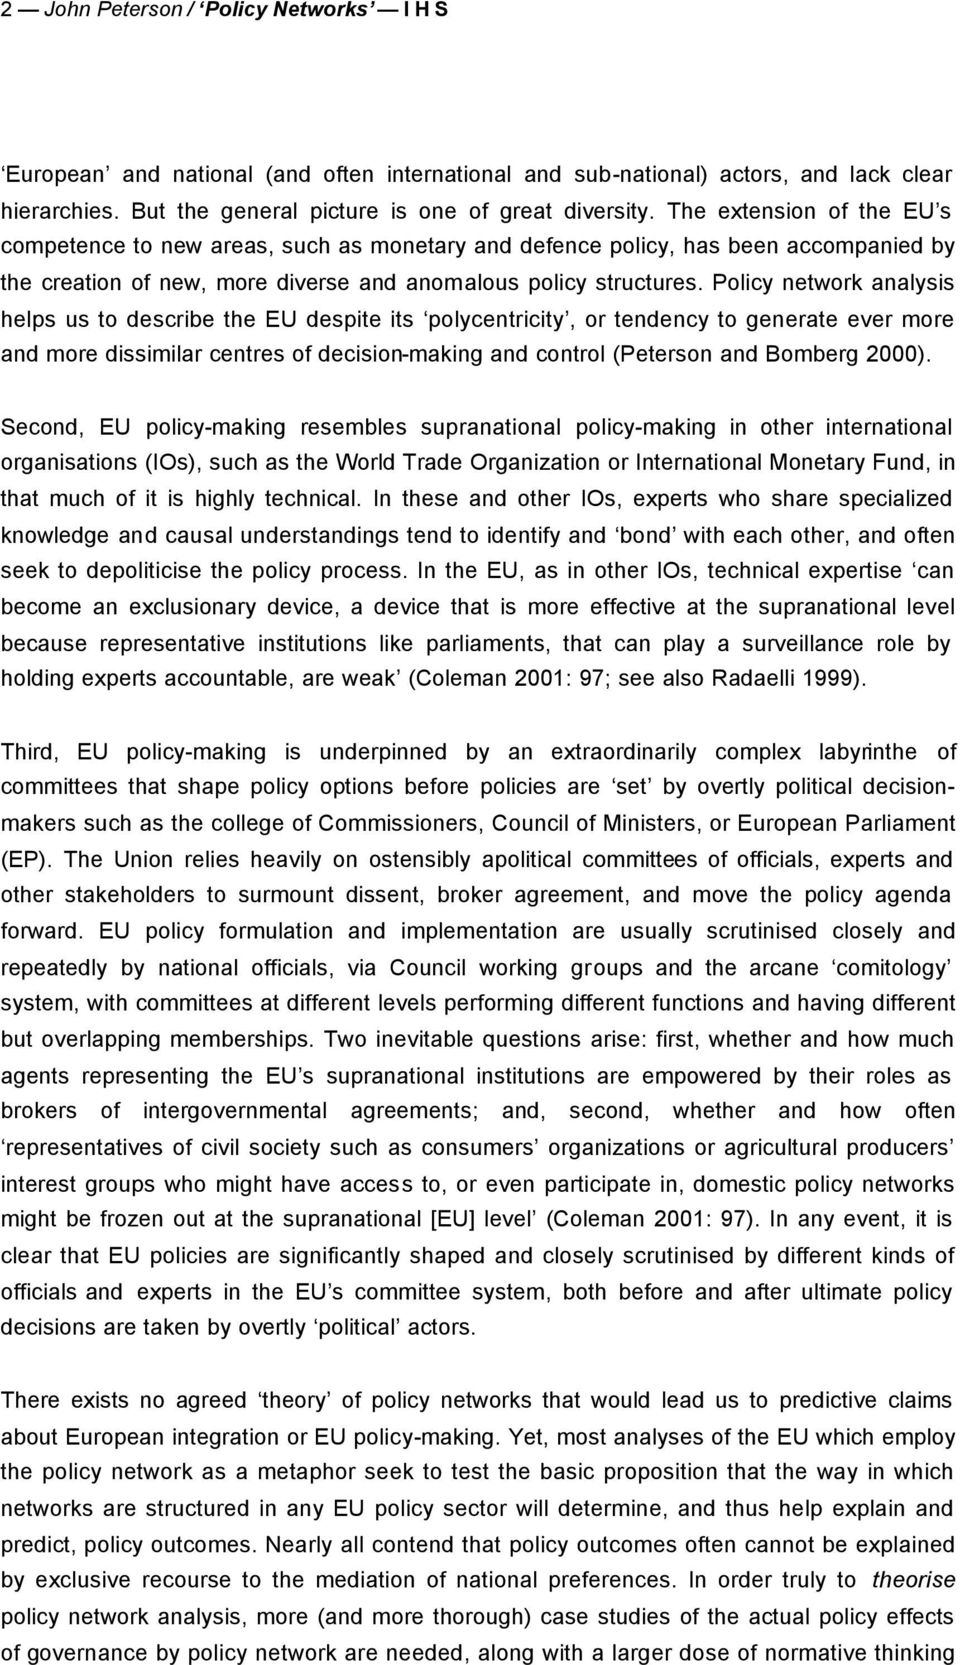 Policy network analysis helps us to describe the EU despite its polycentricity, or tendency to generate ever more and more dissimilar centres of decision-making and control (Peterson and Bomberg